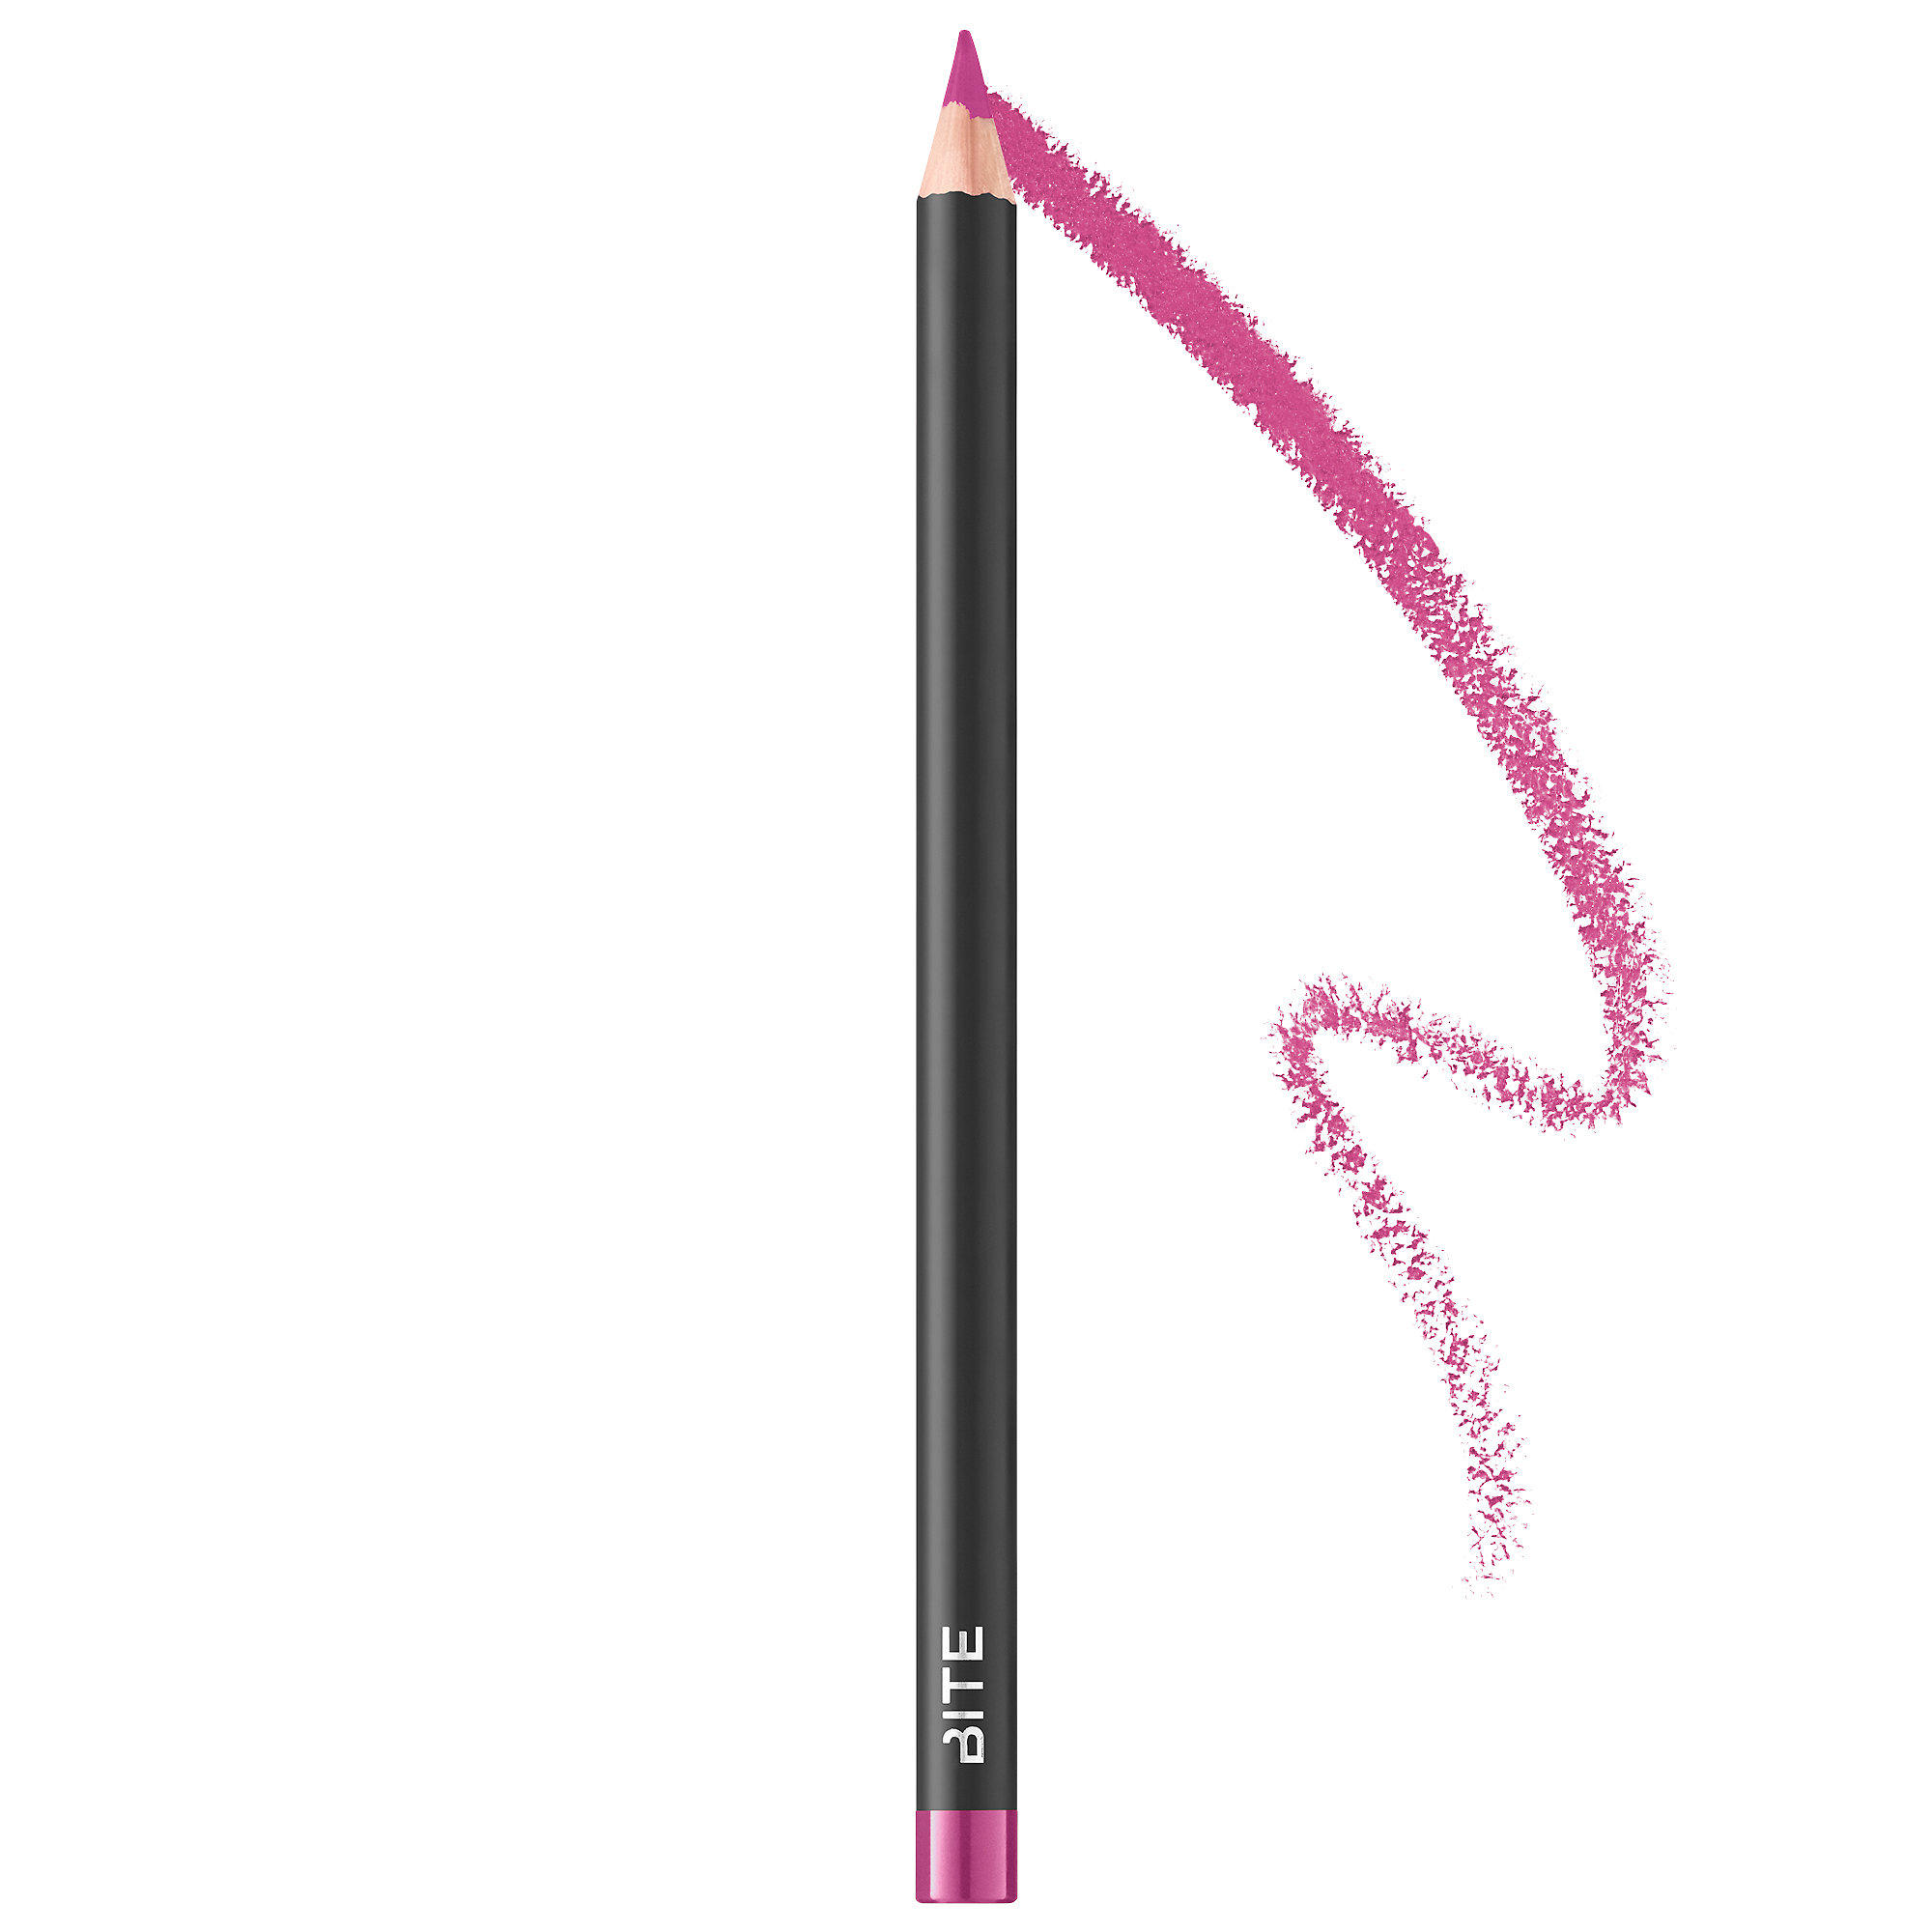 Bite Beauty The Lip Pencil Magenta-Violet 090